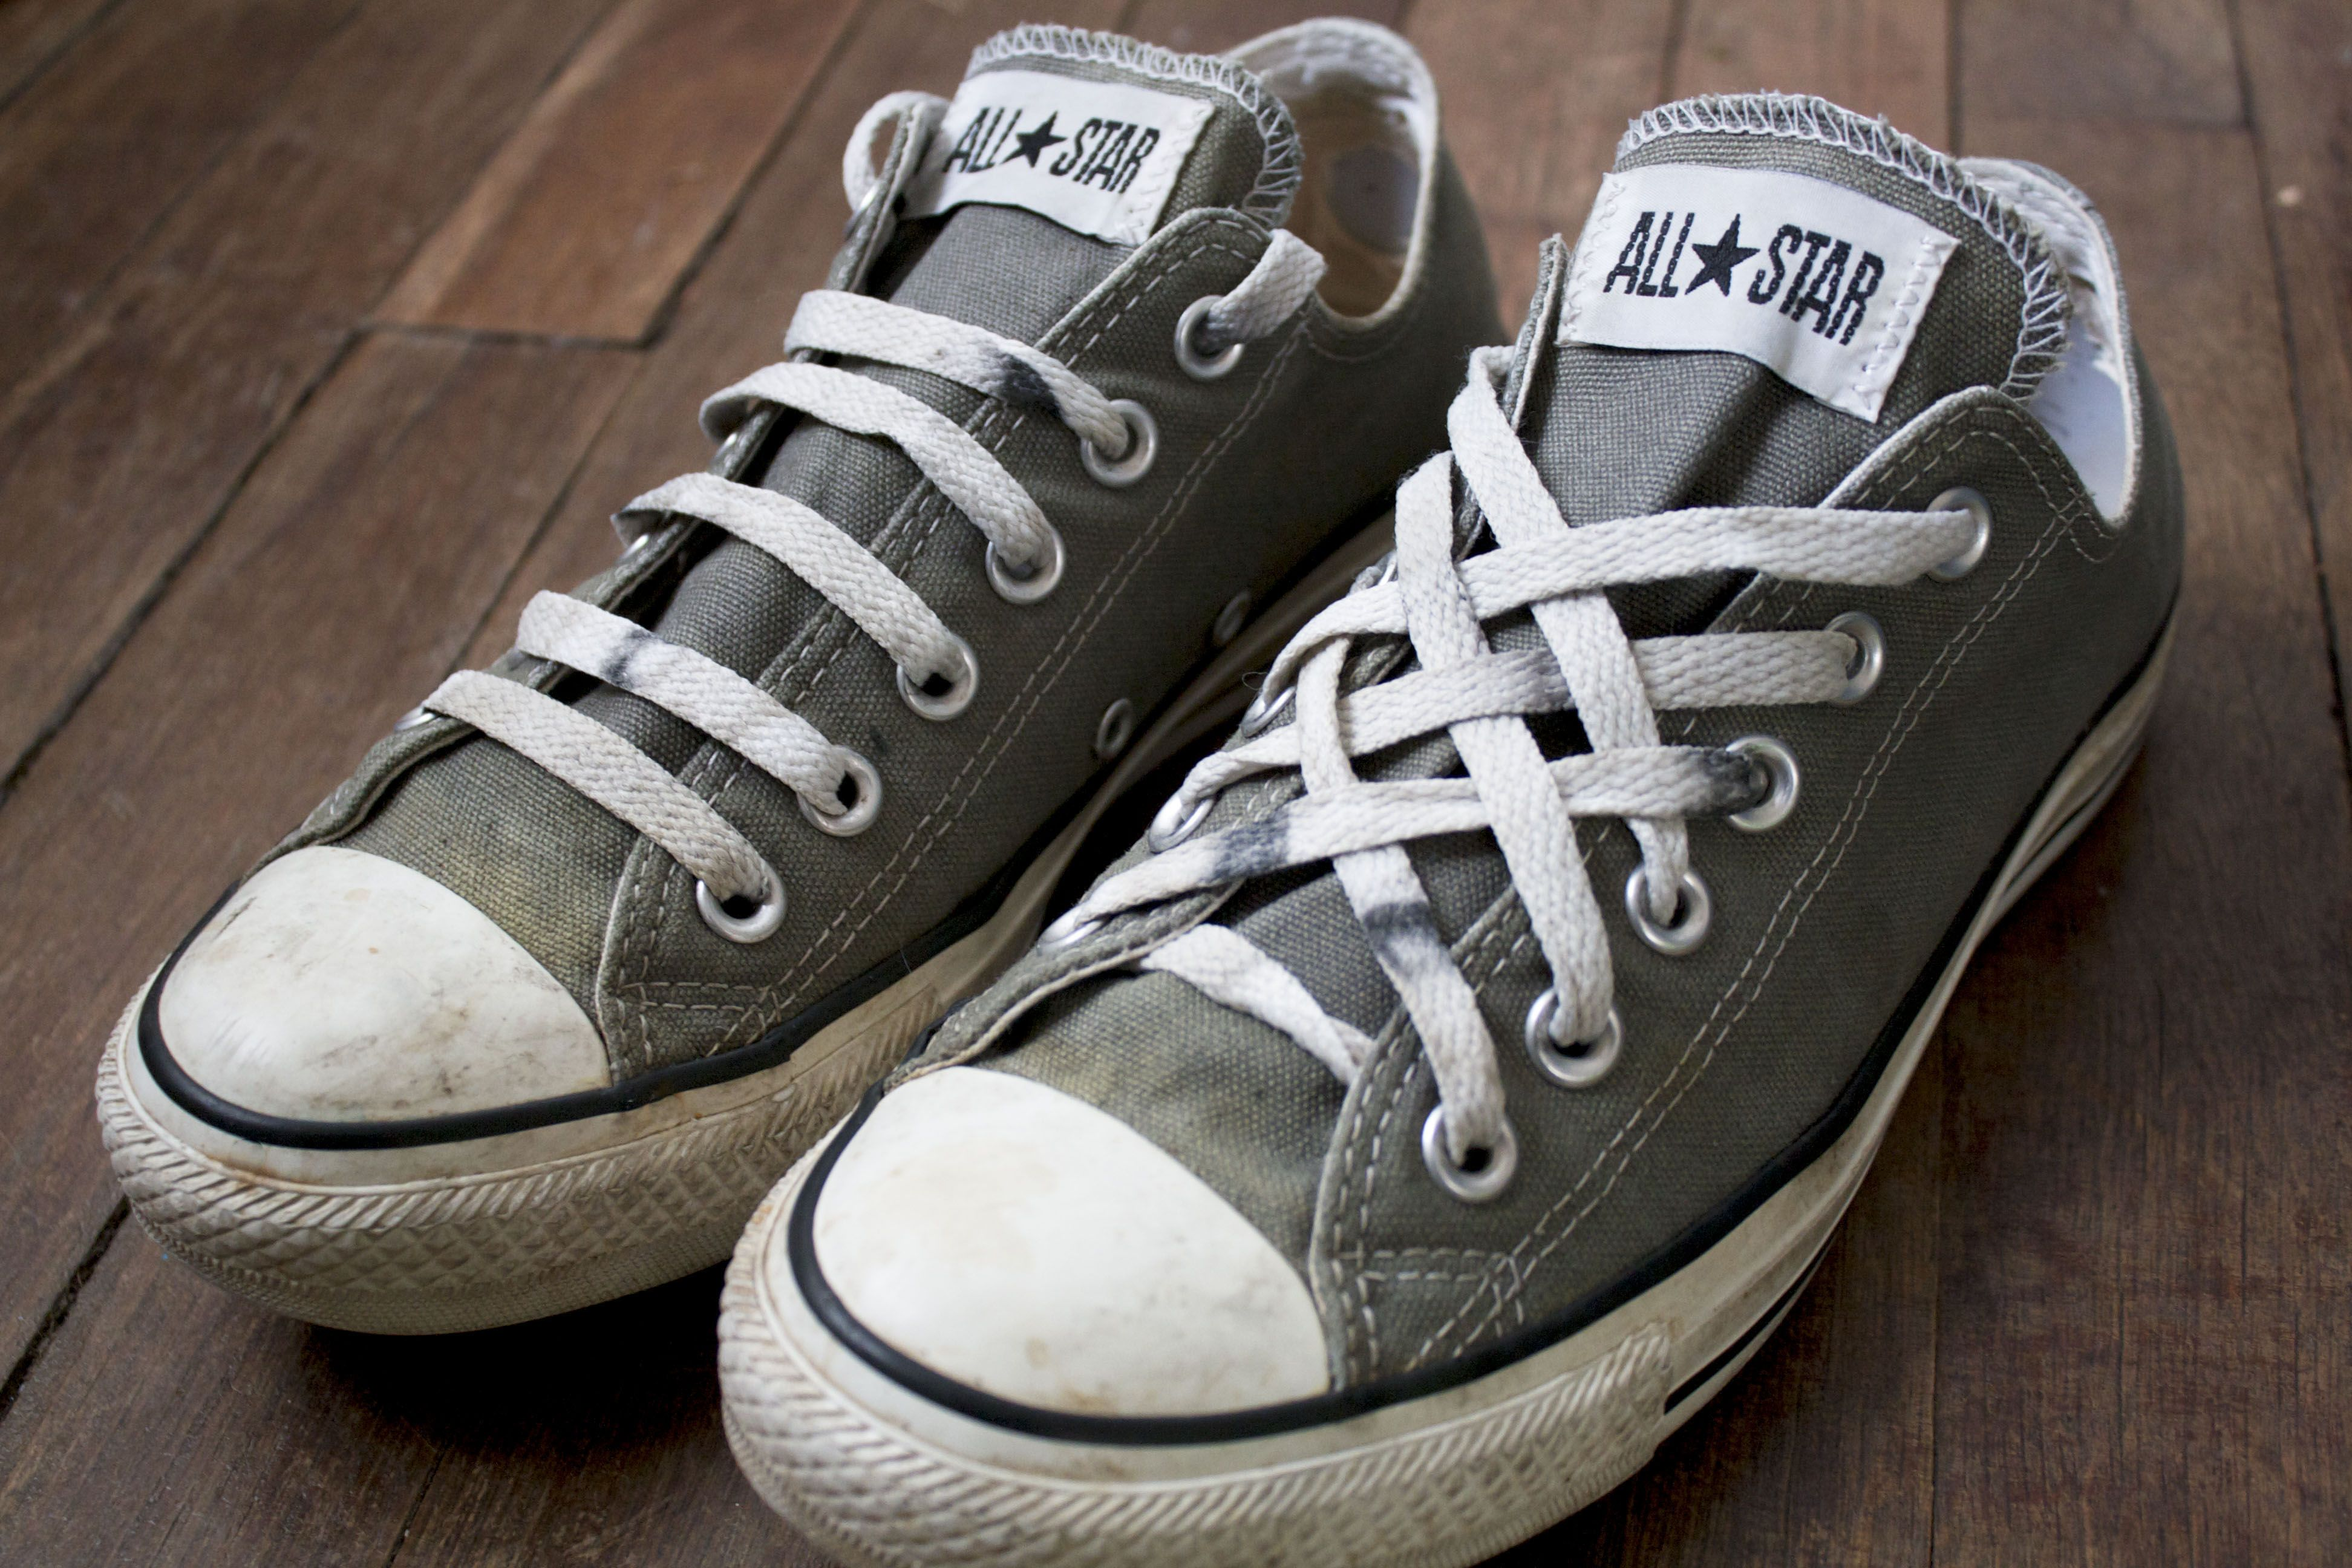 Ideas For Lacing Converse Sneakers Ways To Lace Shoes How To Lace Converse Shoe Laces